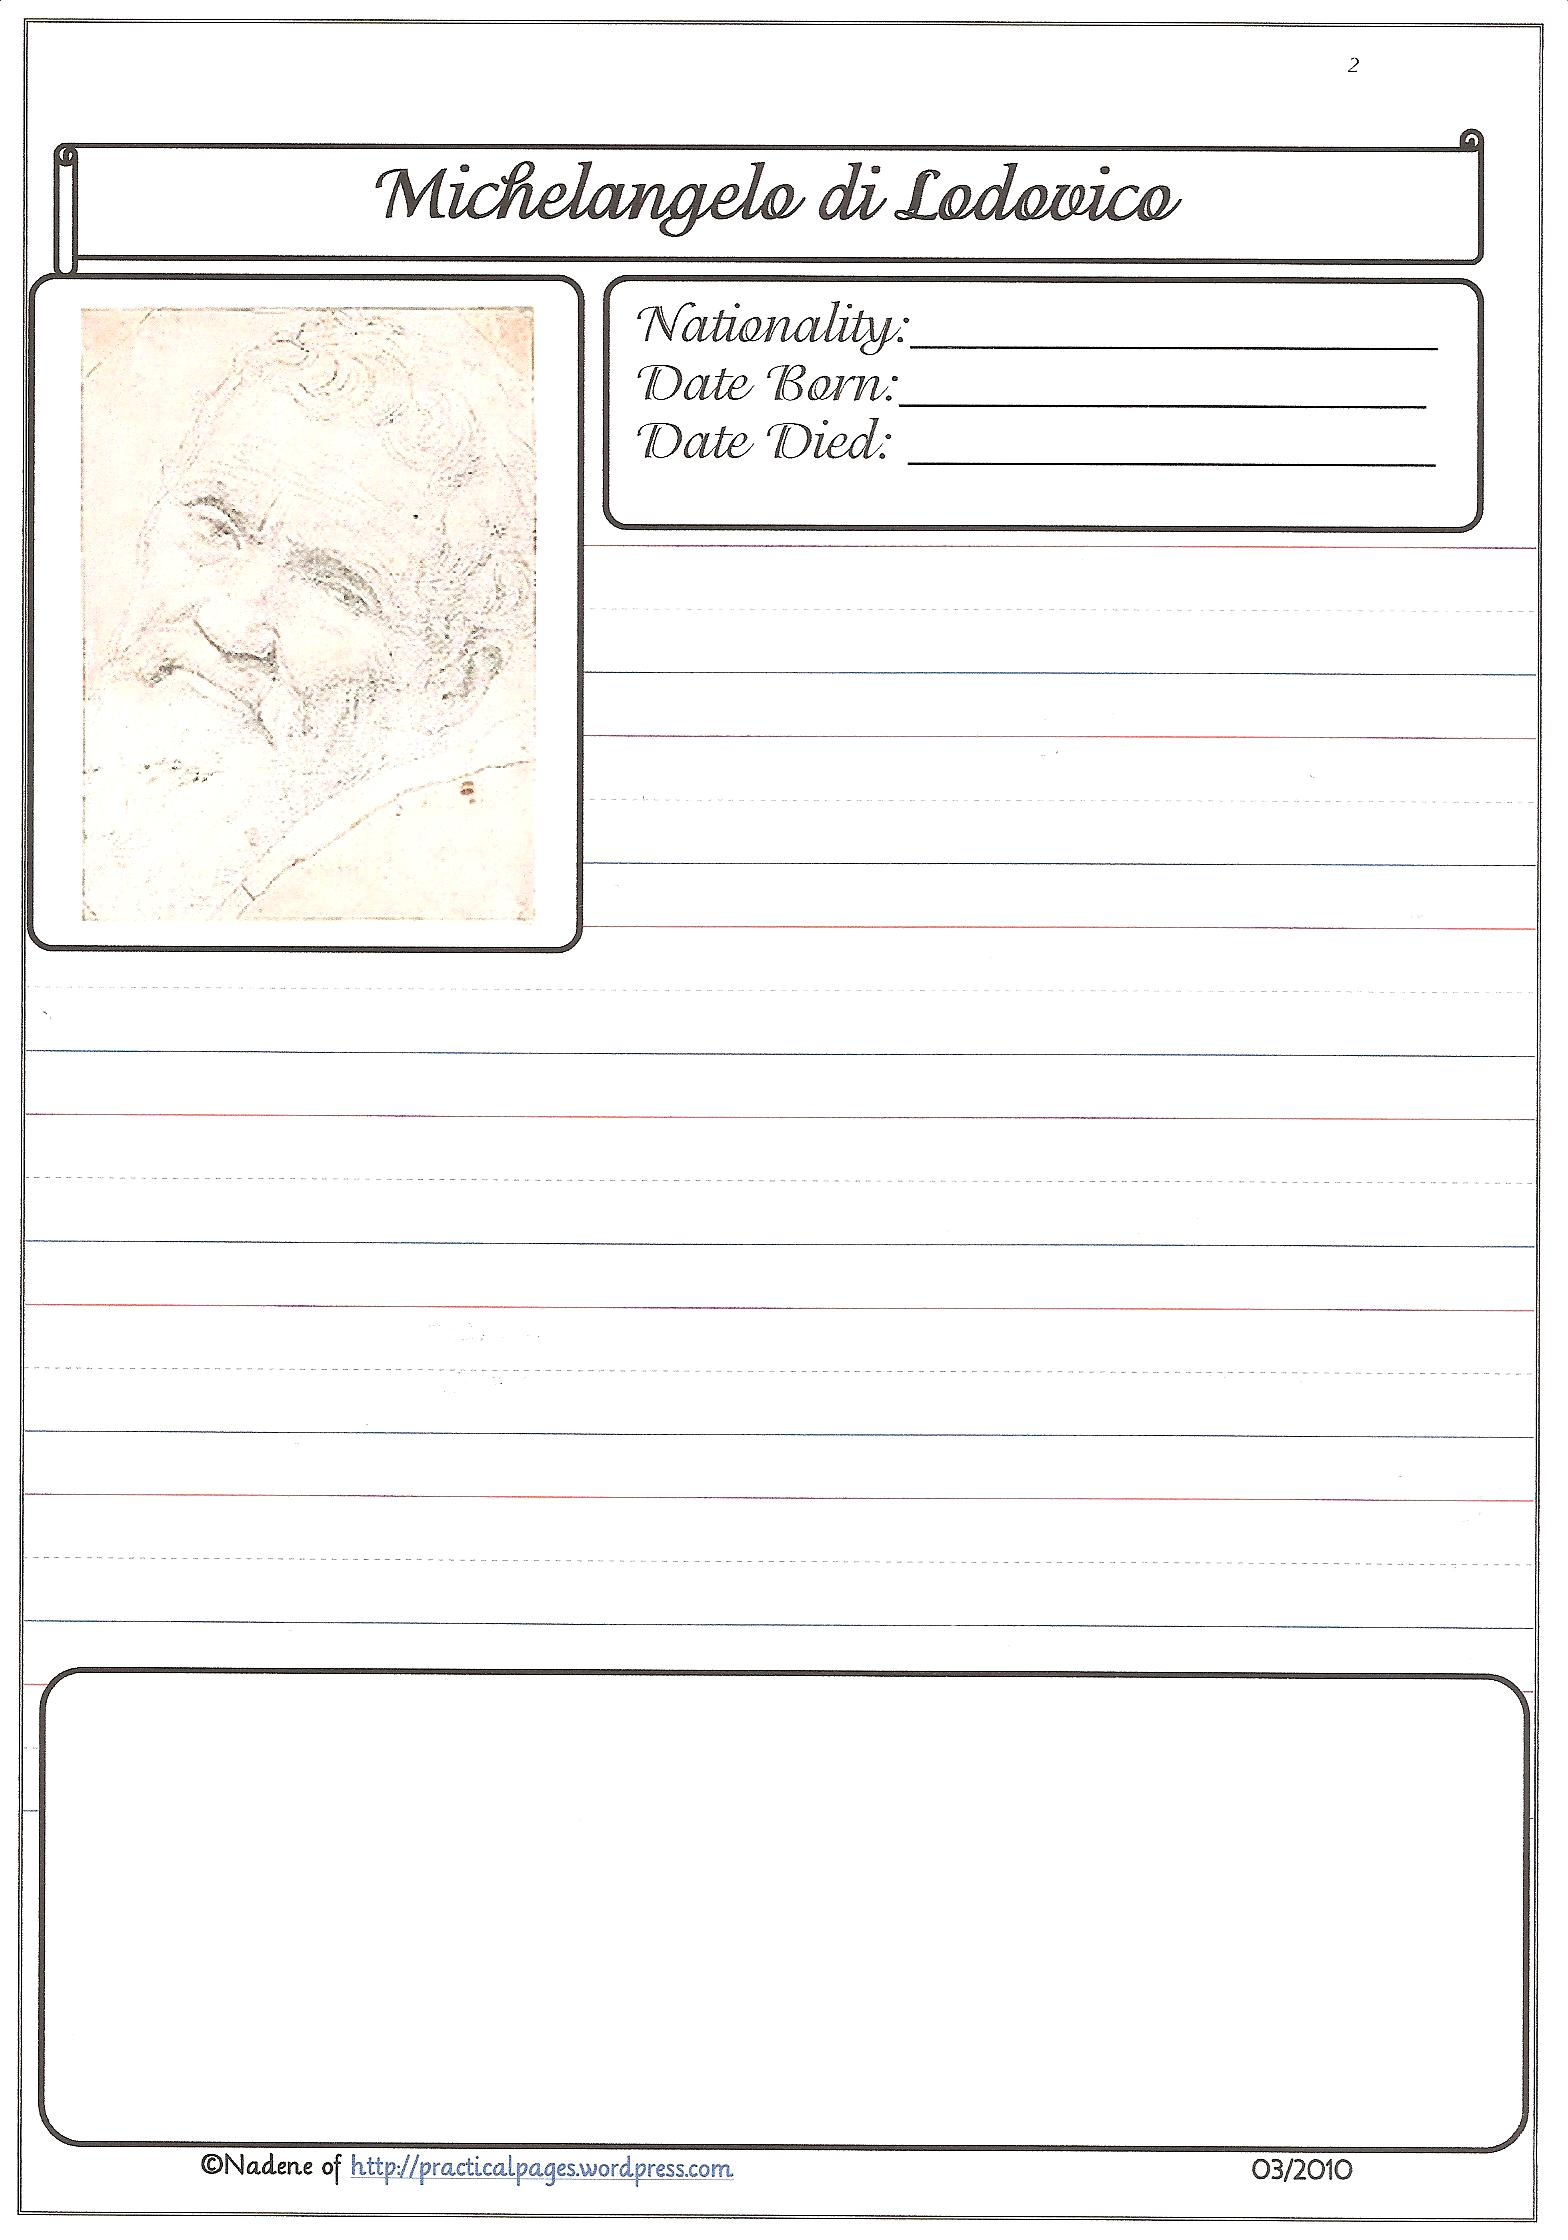 historical biography template - famous artists practical pages